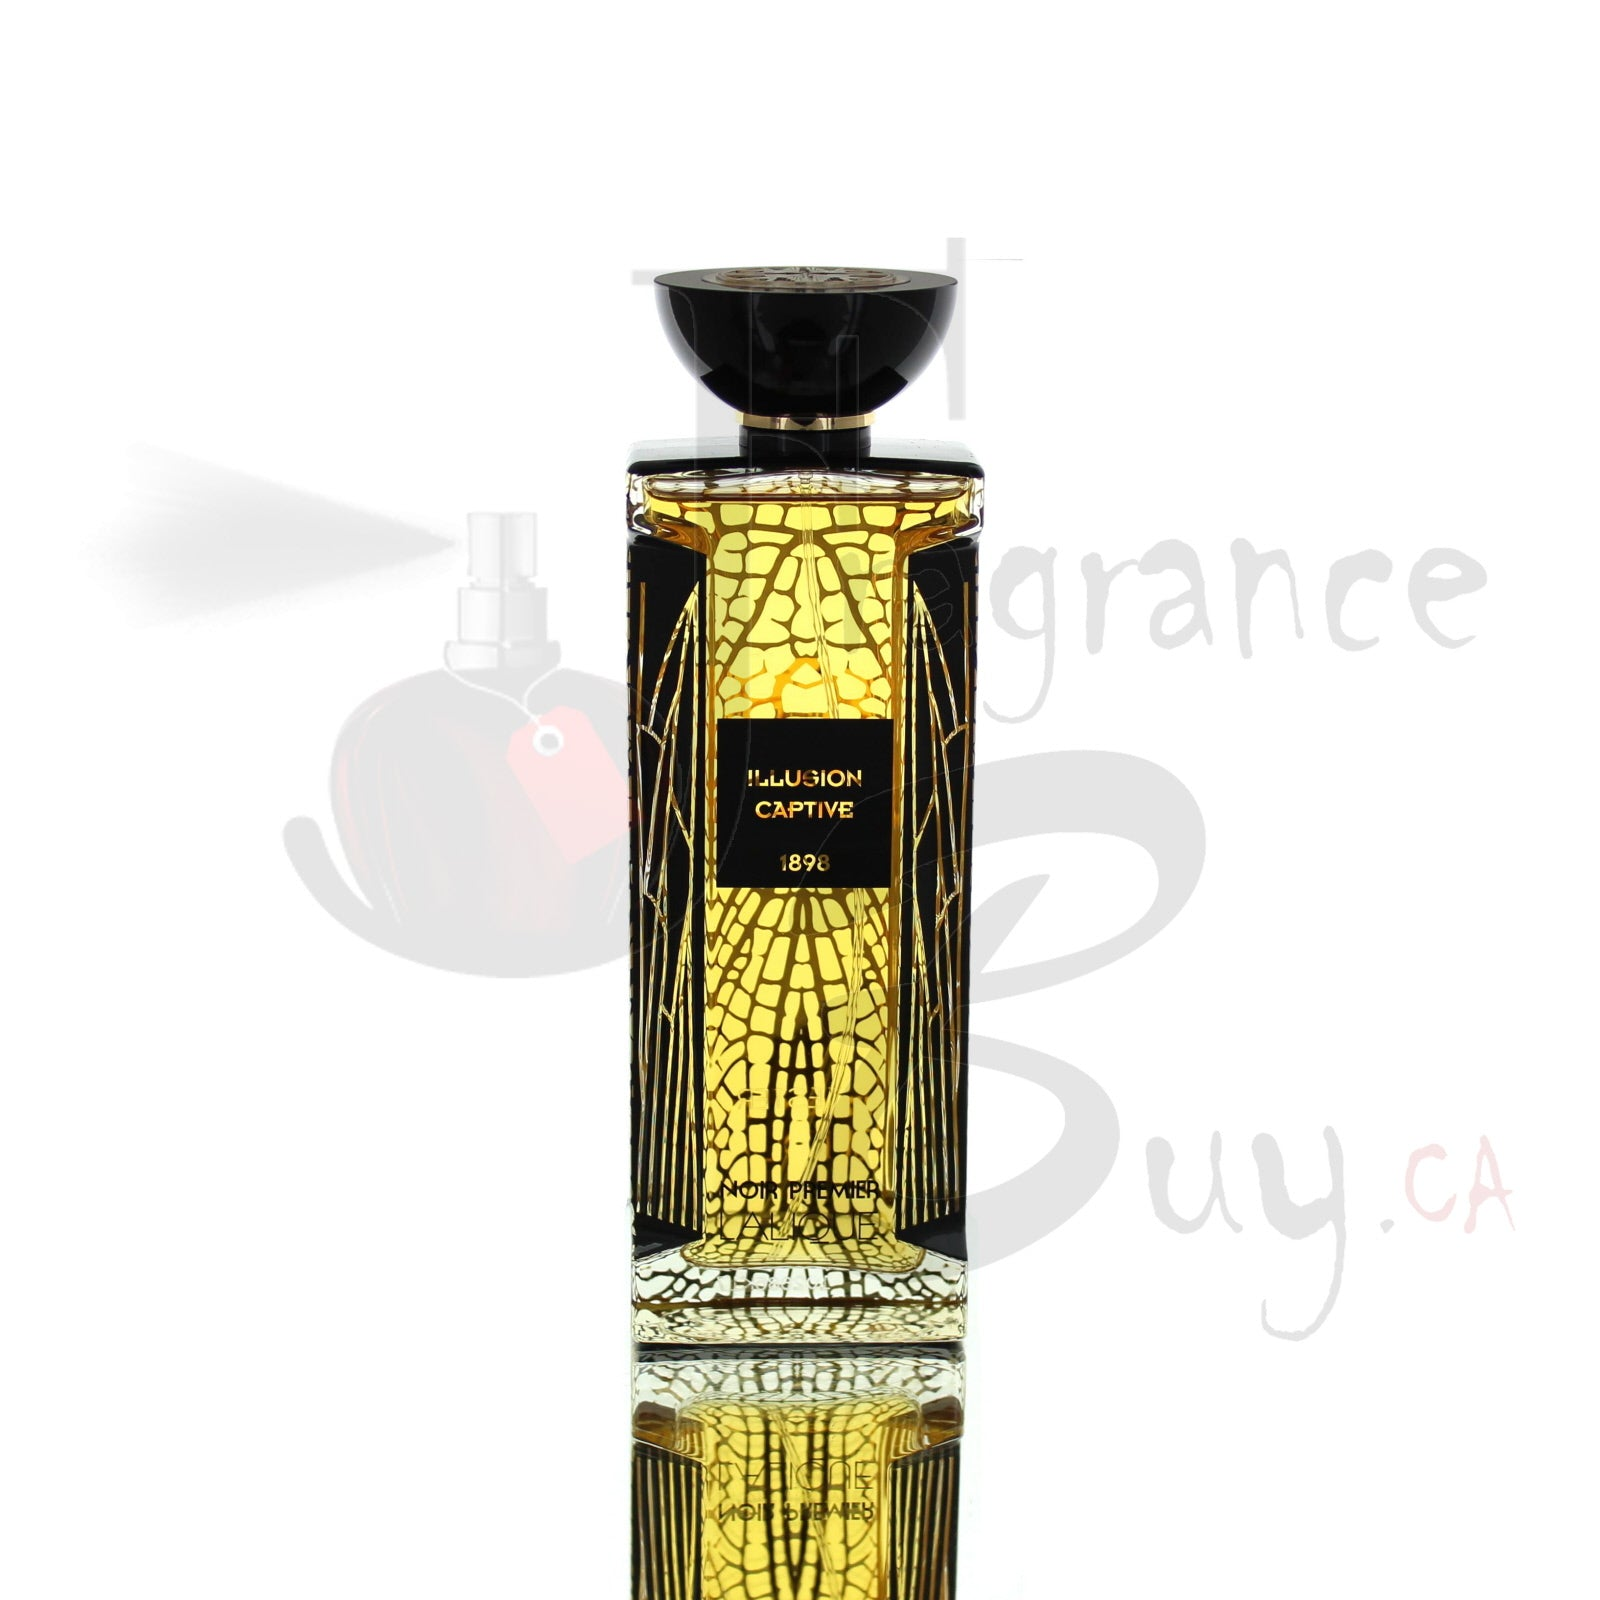 Lalique Noir Premier Illusion Captive Private Collection For Man/Woman